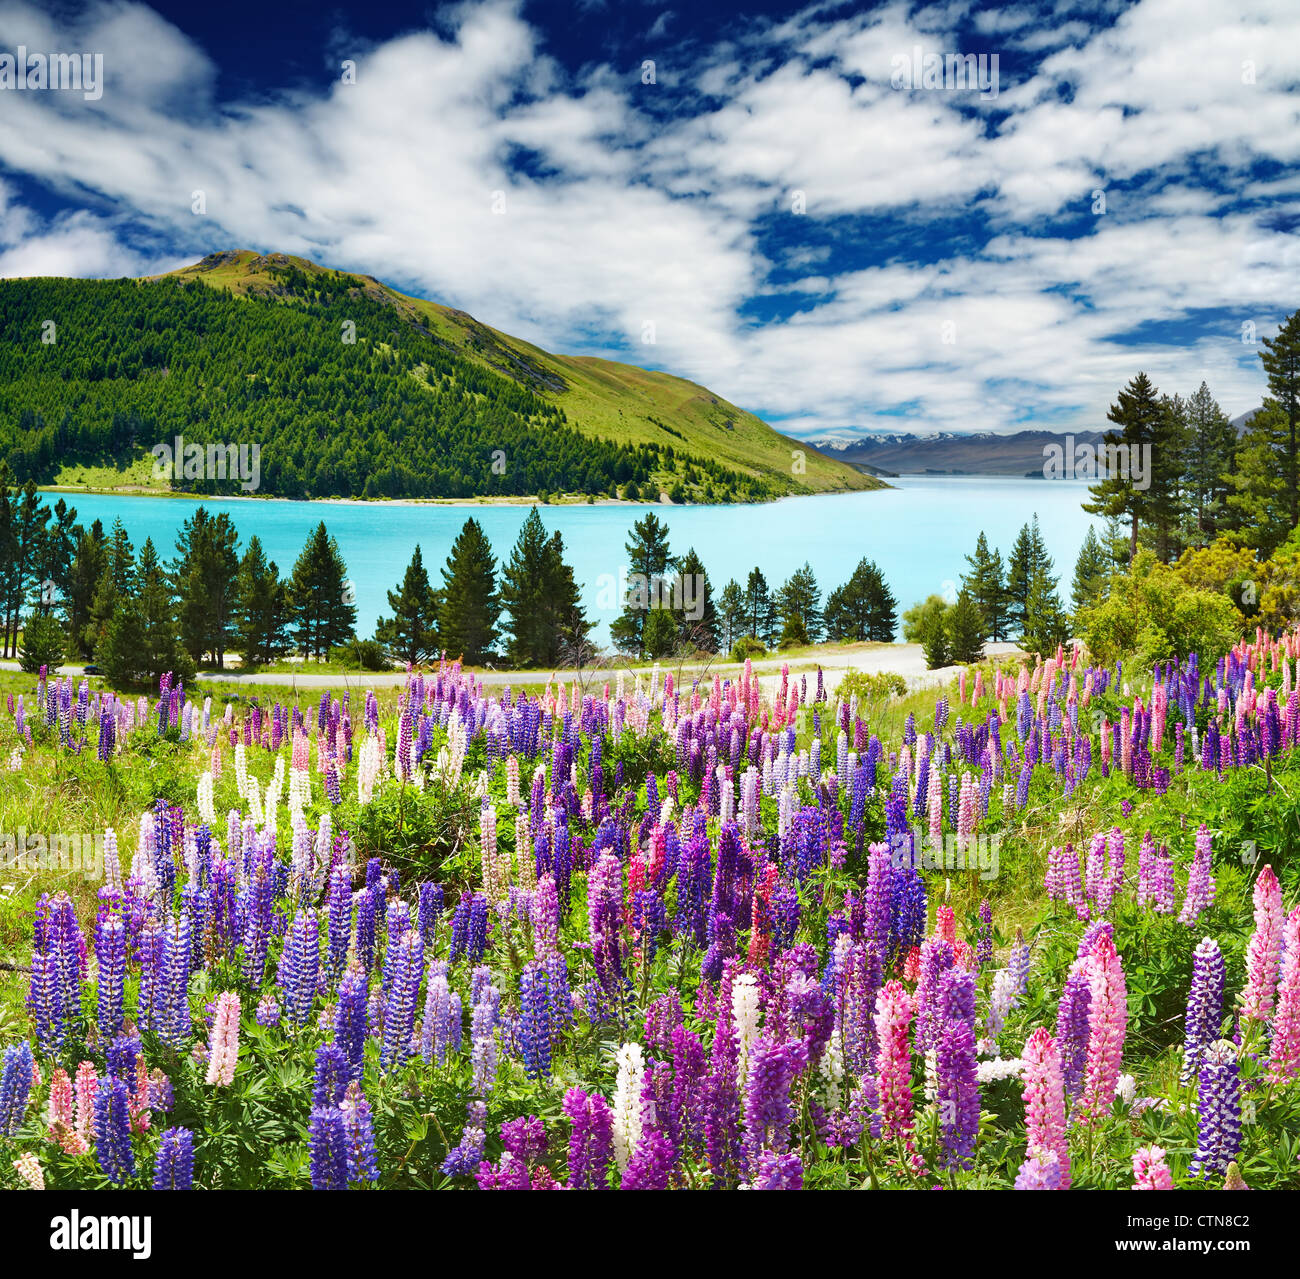 Landscape with lake and flowers, New Zealand - Stock Image